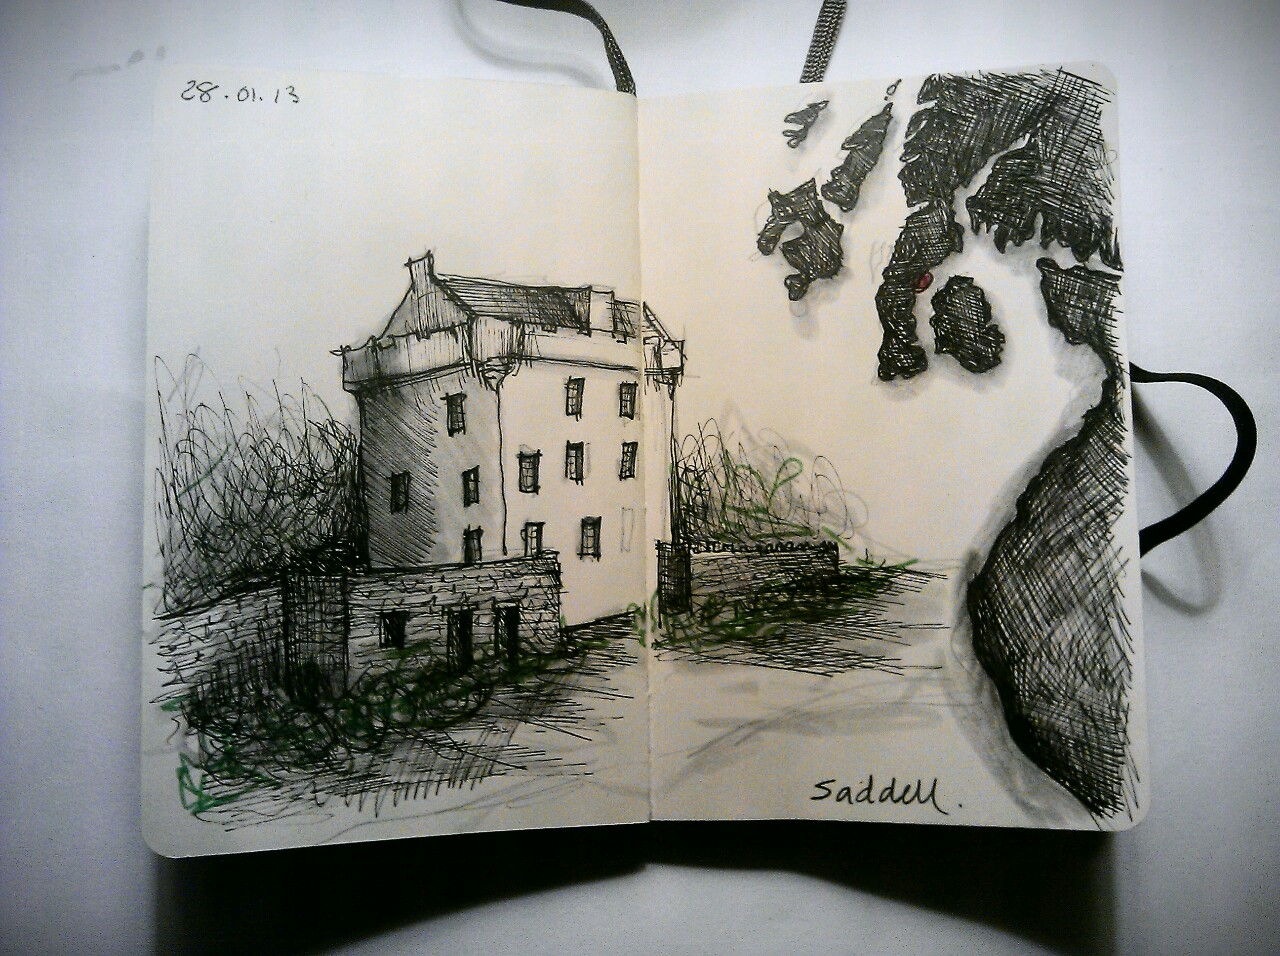 365 drawings later … day 363 … saddell